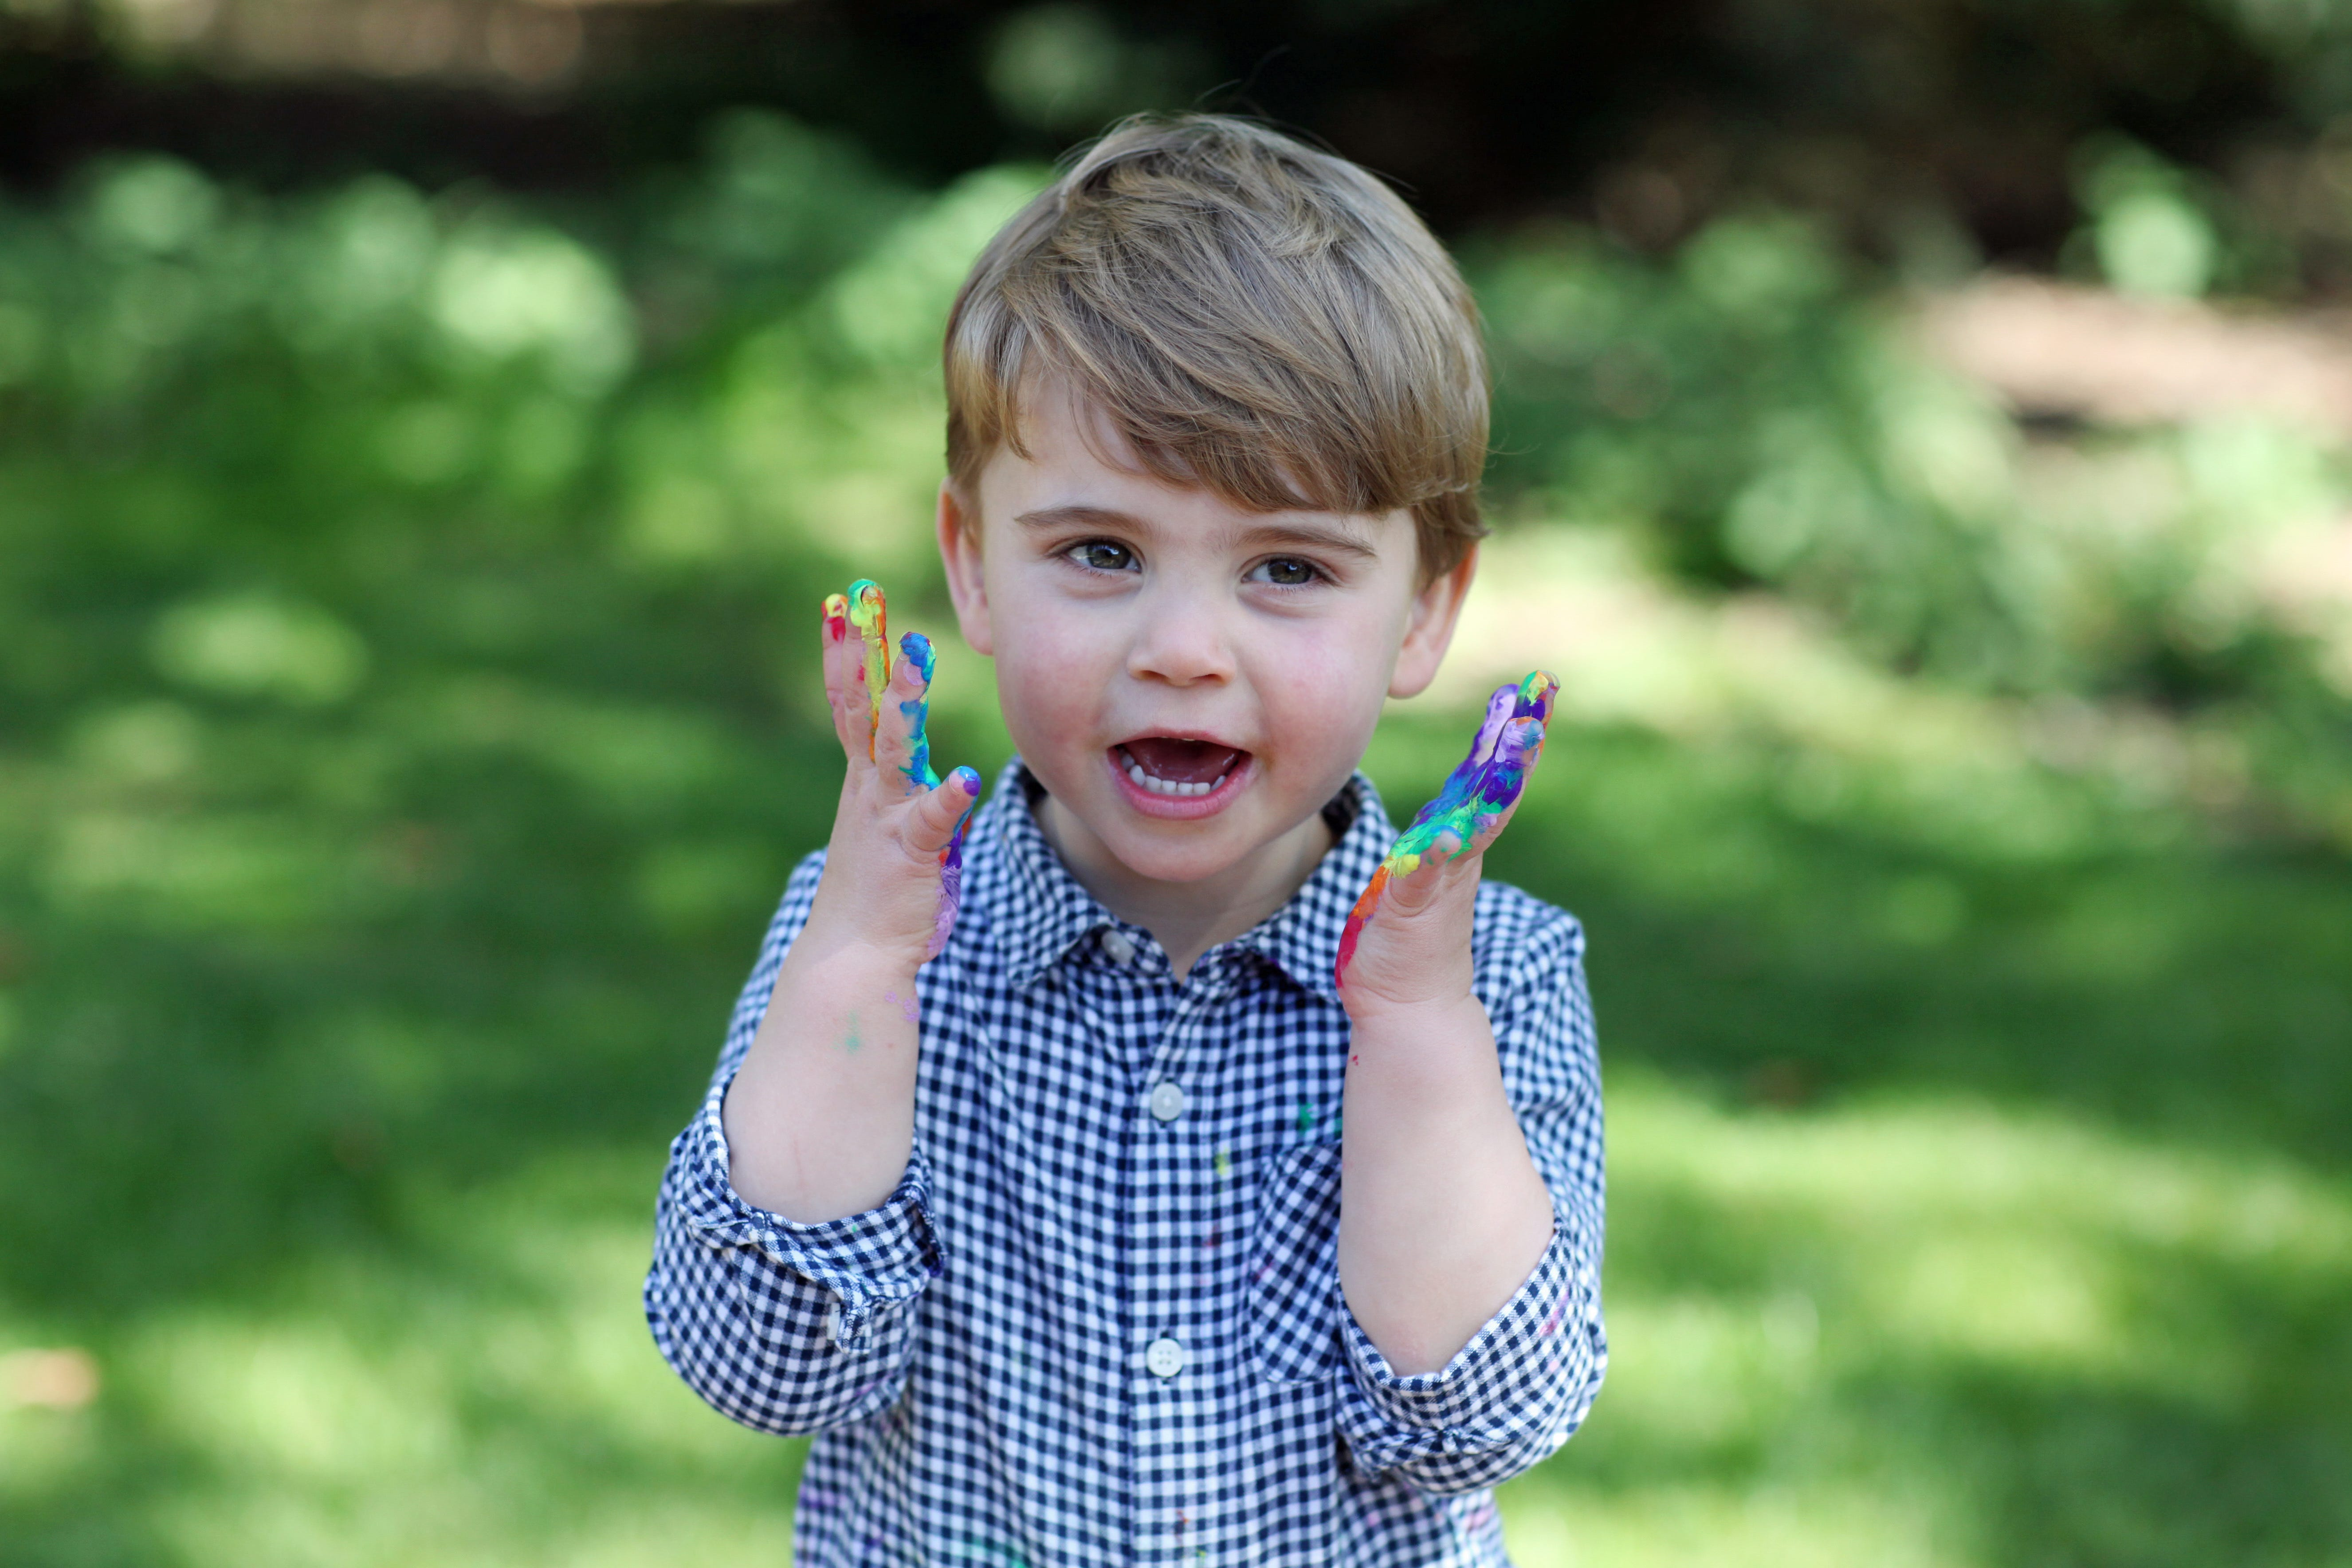 Prince Louis 2020 Christmas Images Photos: Happy birthday, Prince Louis! Youngest royal Cambridge turns 2